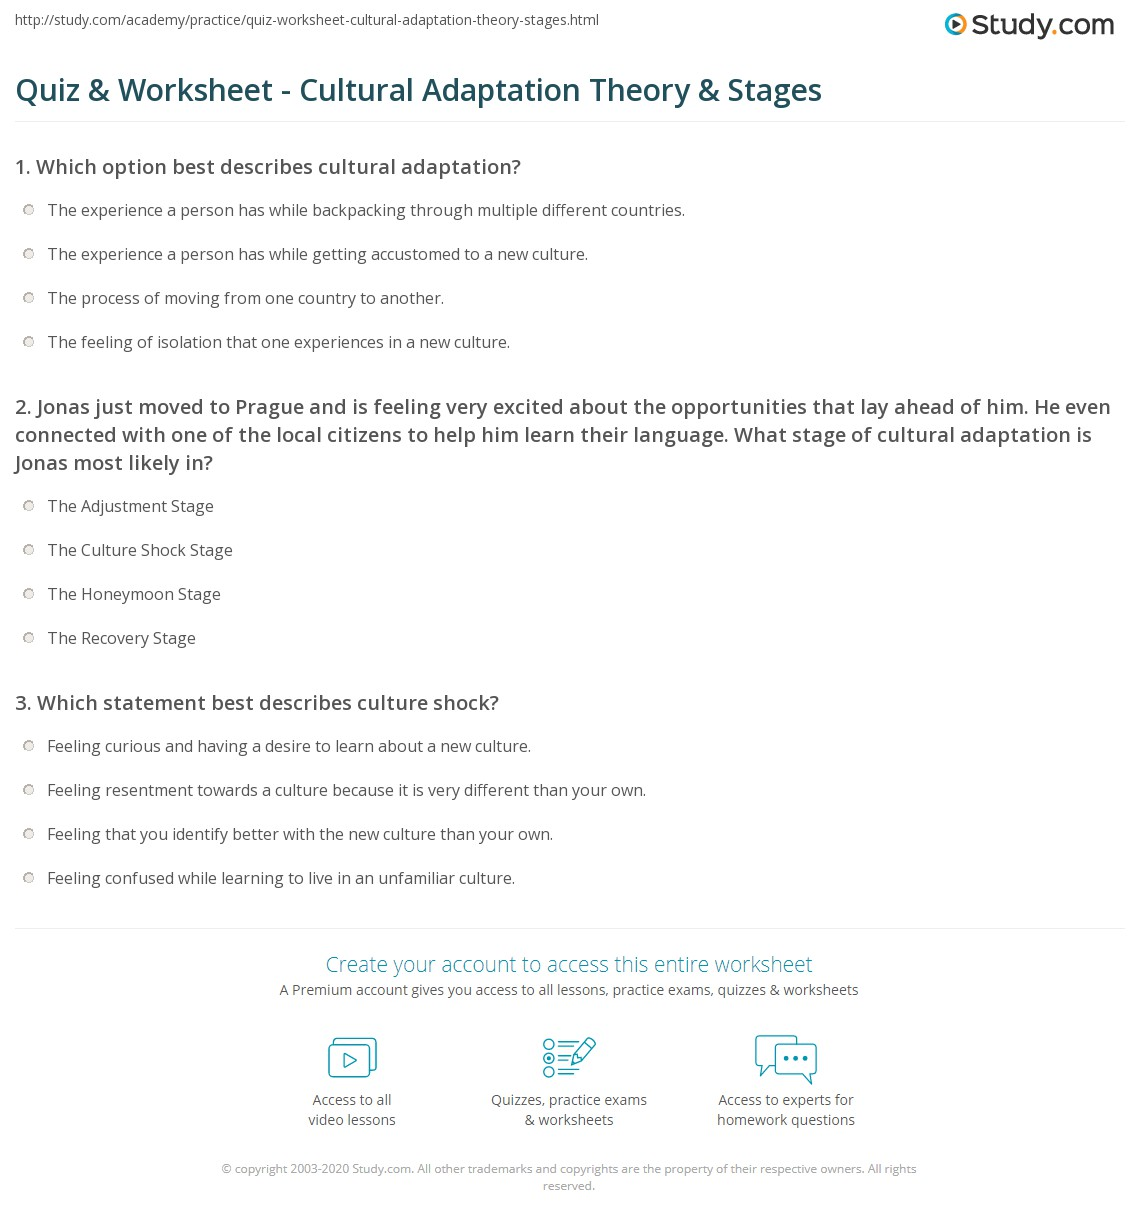 worksheet Adaptations Worksheet quiz worksheet cultural adaptation theory stages study com 1 jonas just moved to prague and is feeling very excited about the opportunities that lay ahead of him he even connected with one